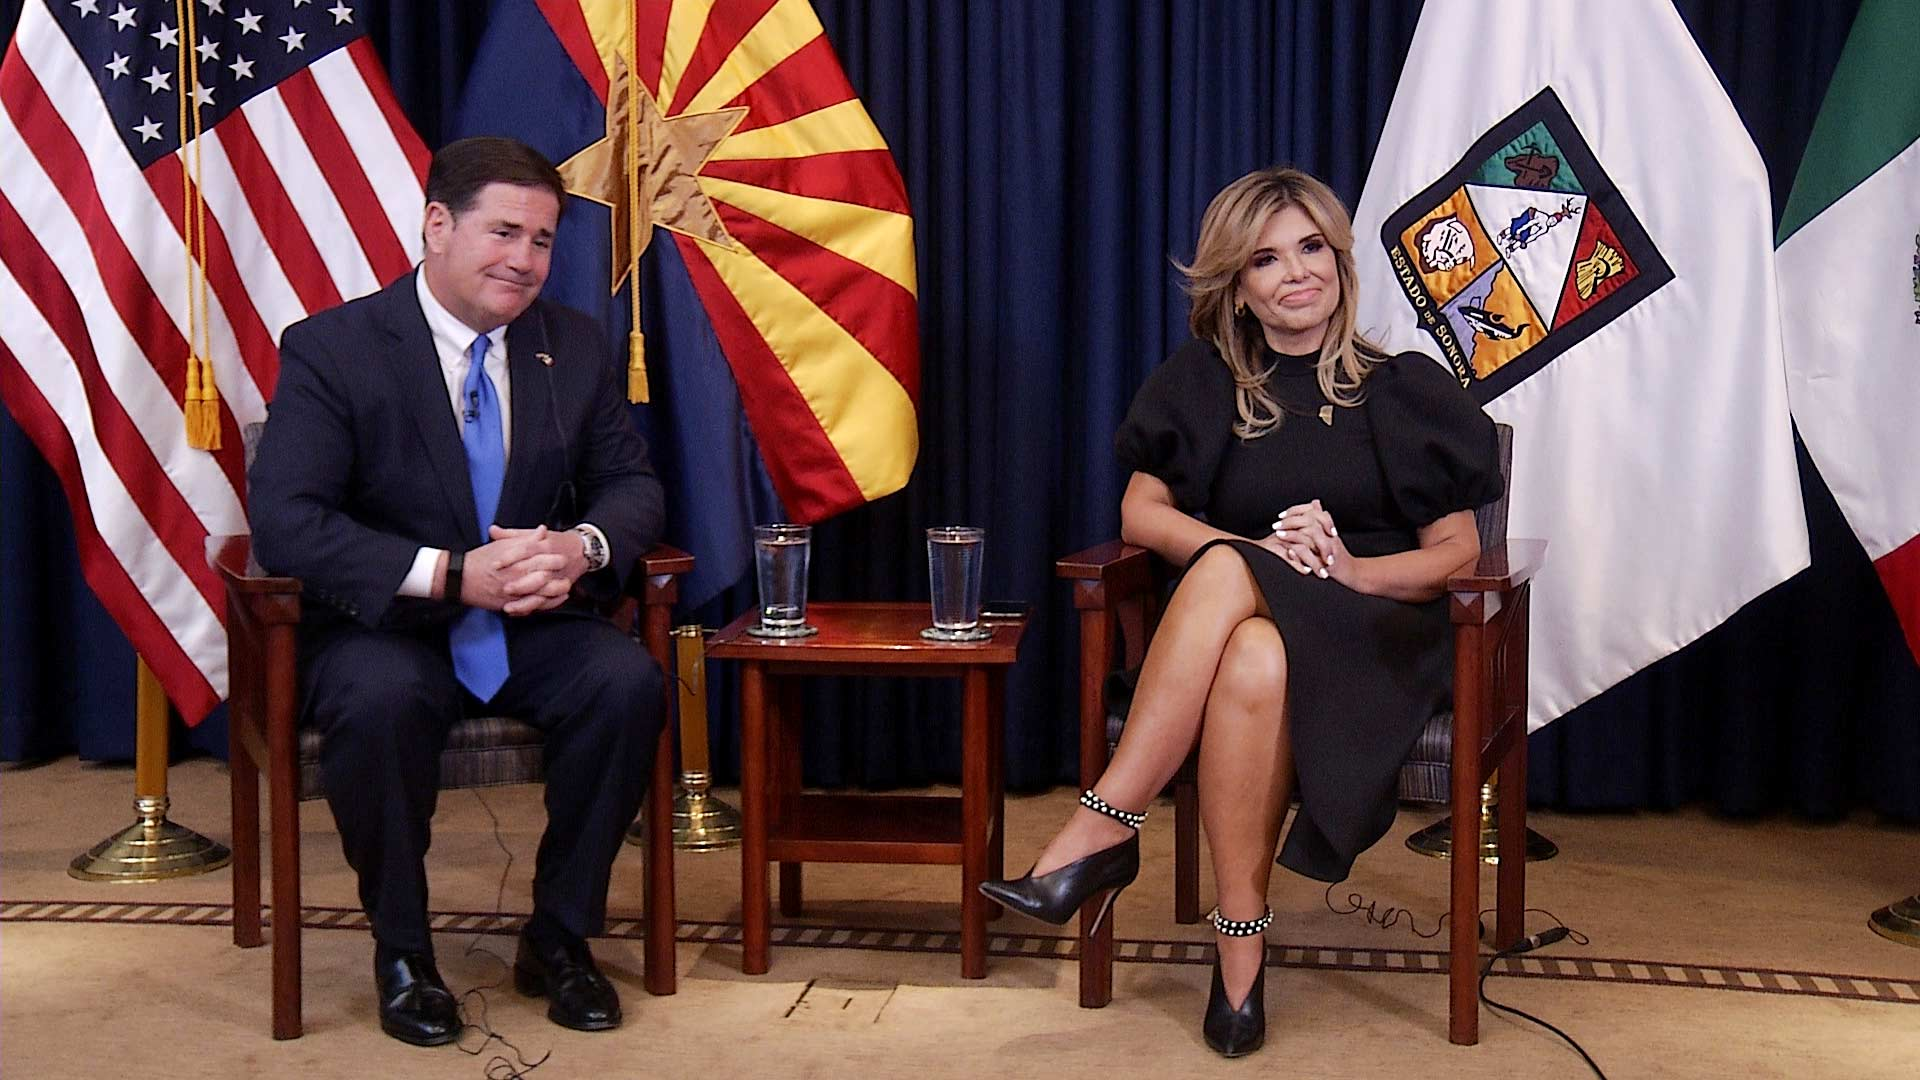 Arizona Gov. Doug Ducey and Sonora, Mexico Gov. Claudia Pavlovich sit for a joint interview in Phoenix on May 21, 2021.